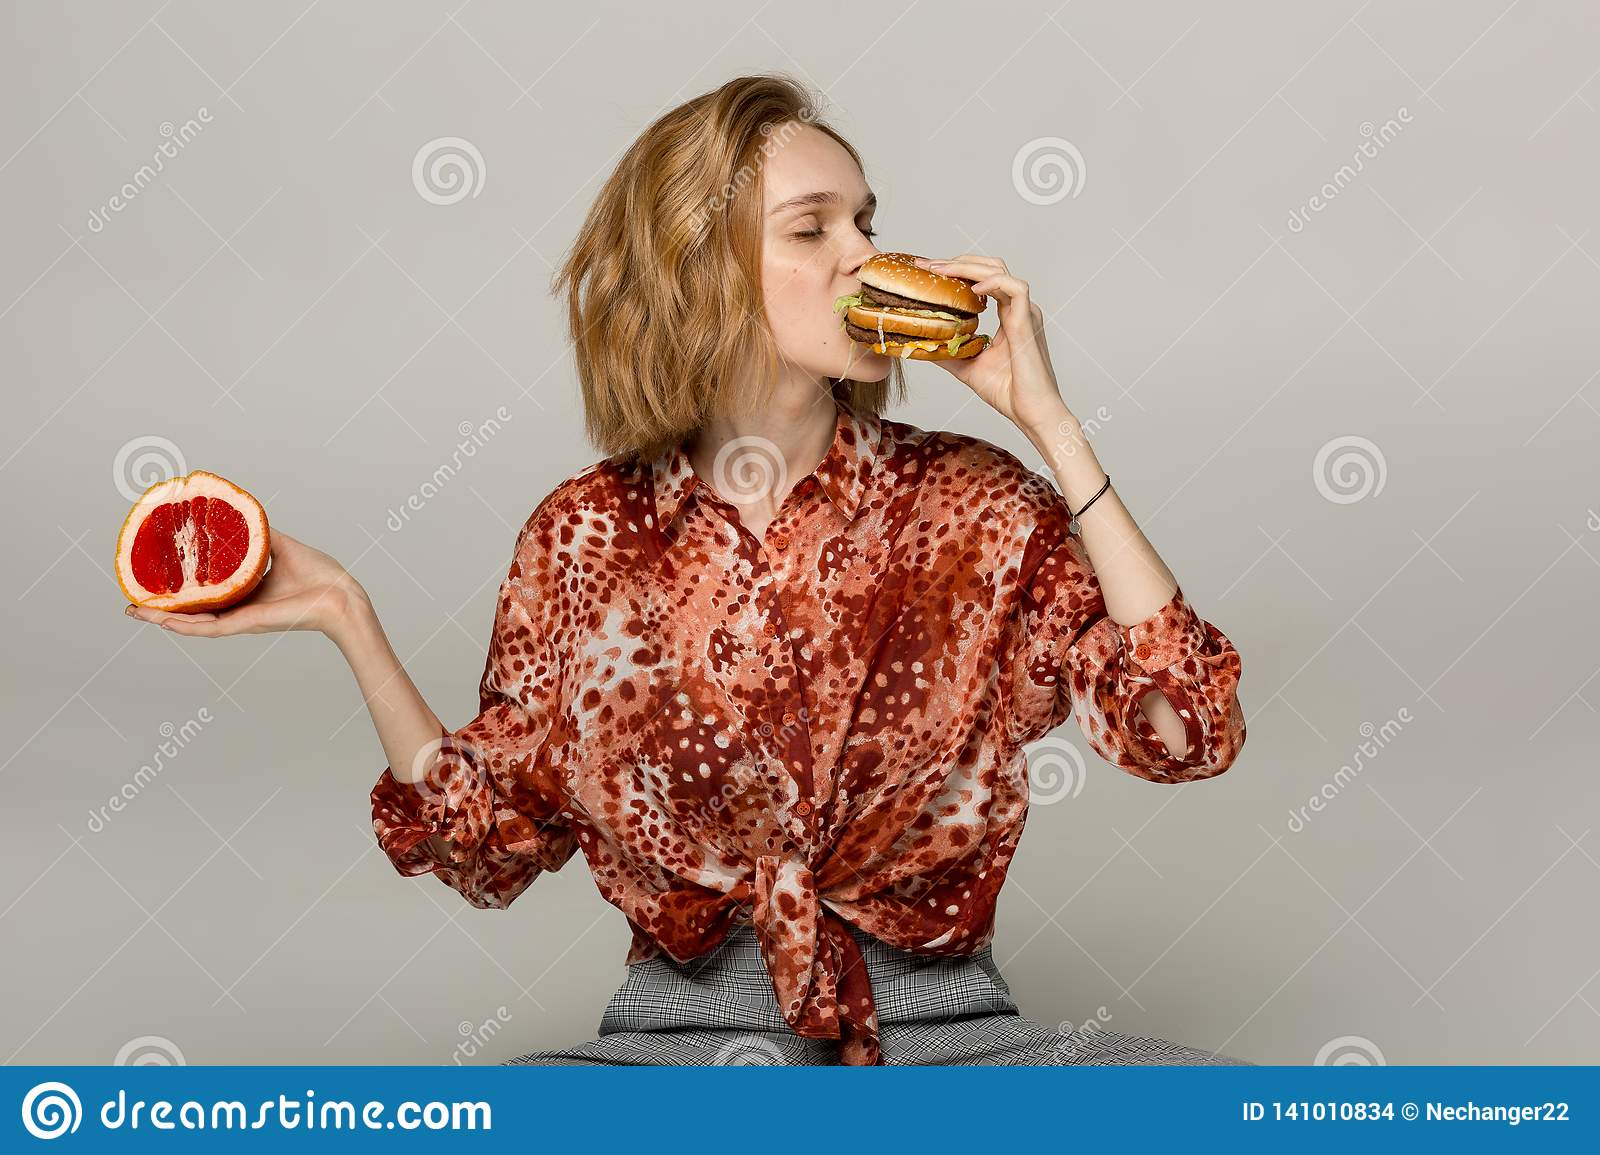 Close up portrait of pretty blonde girl that eating burger